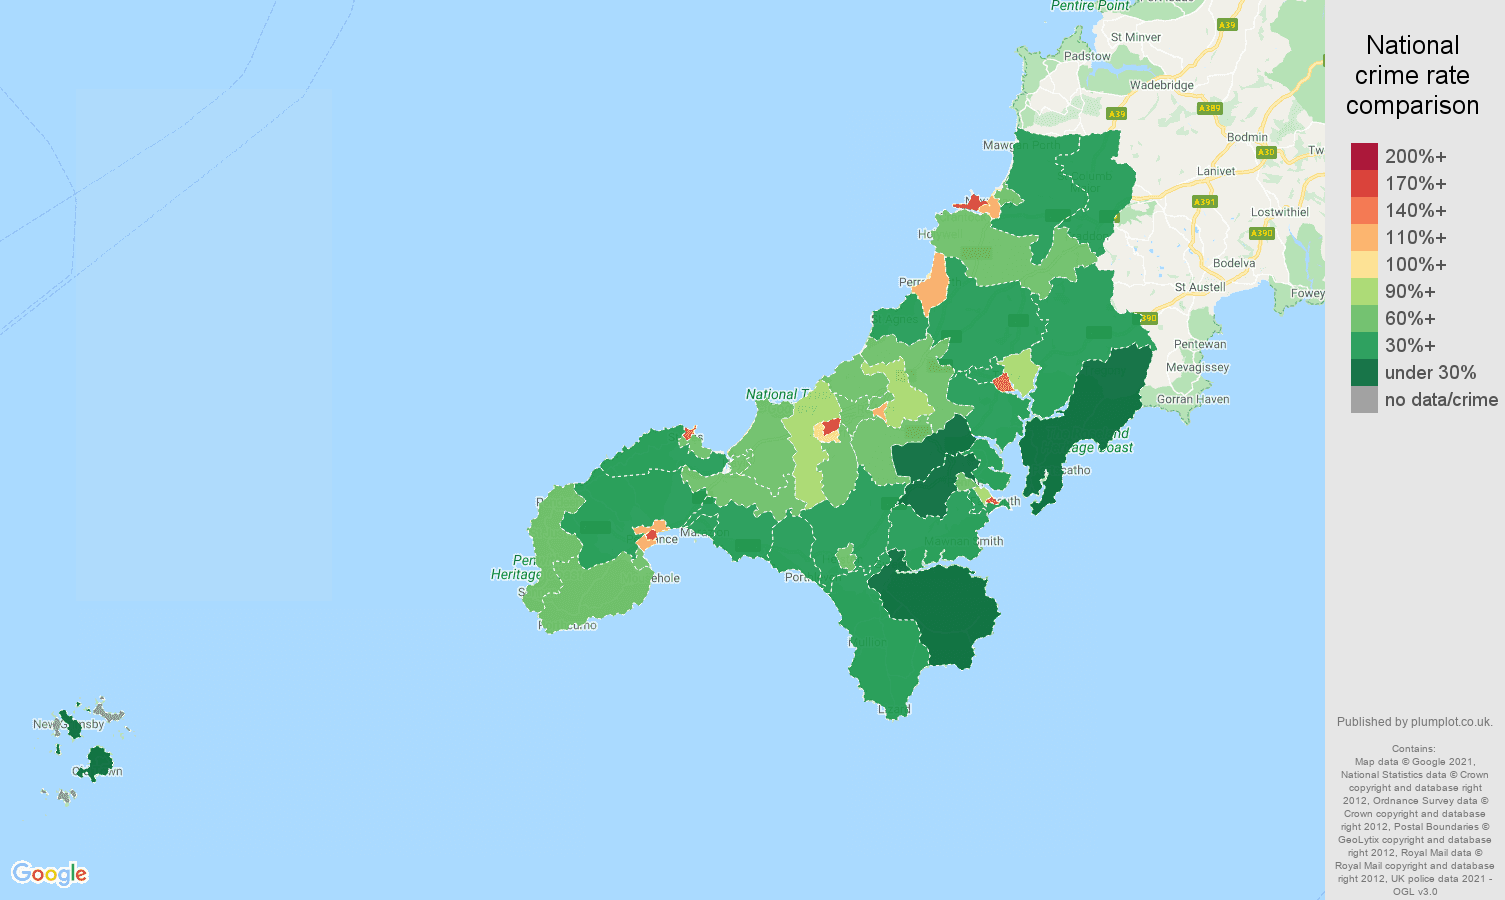 Truro antisocial behaviour crime rate comparison map